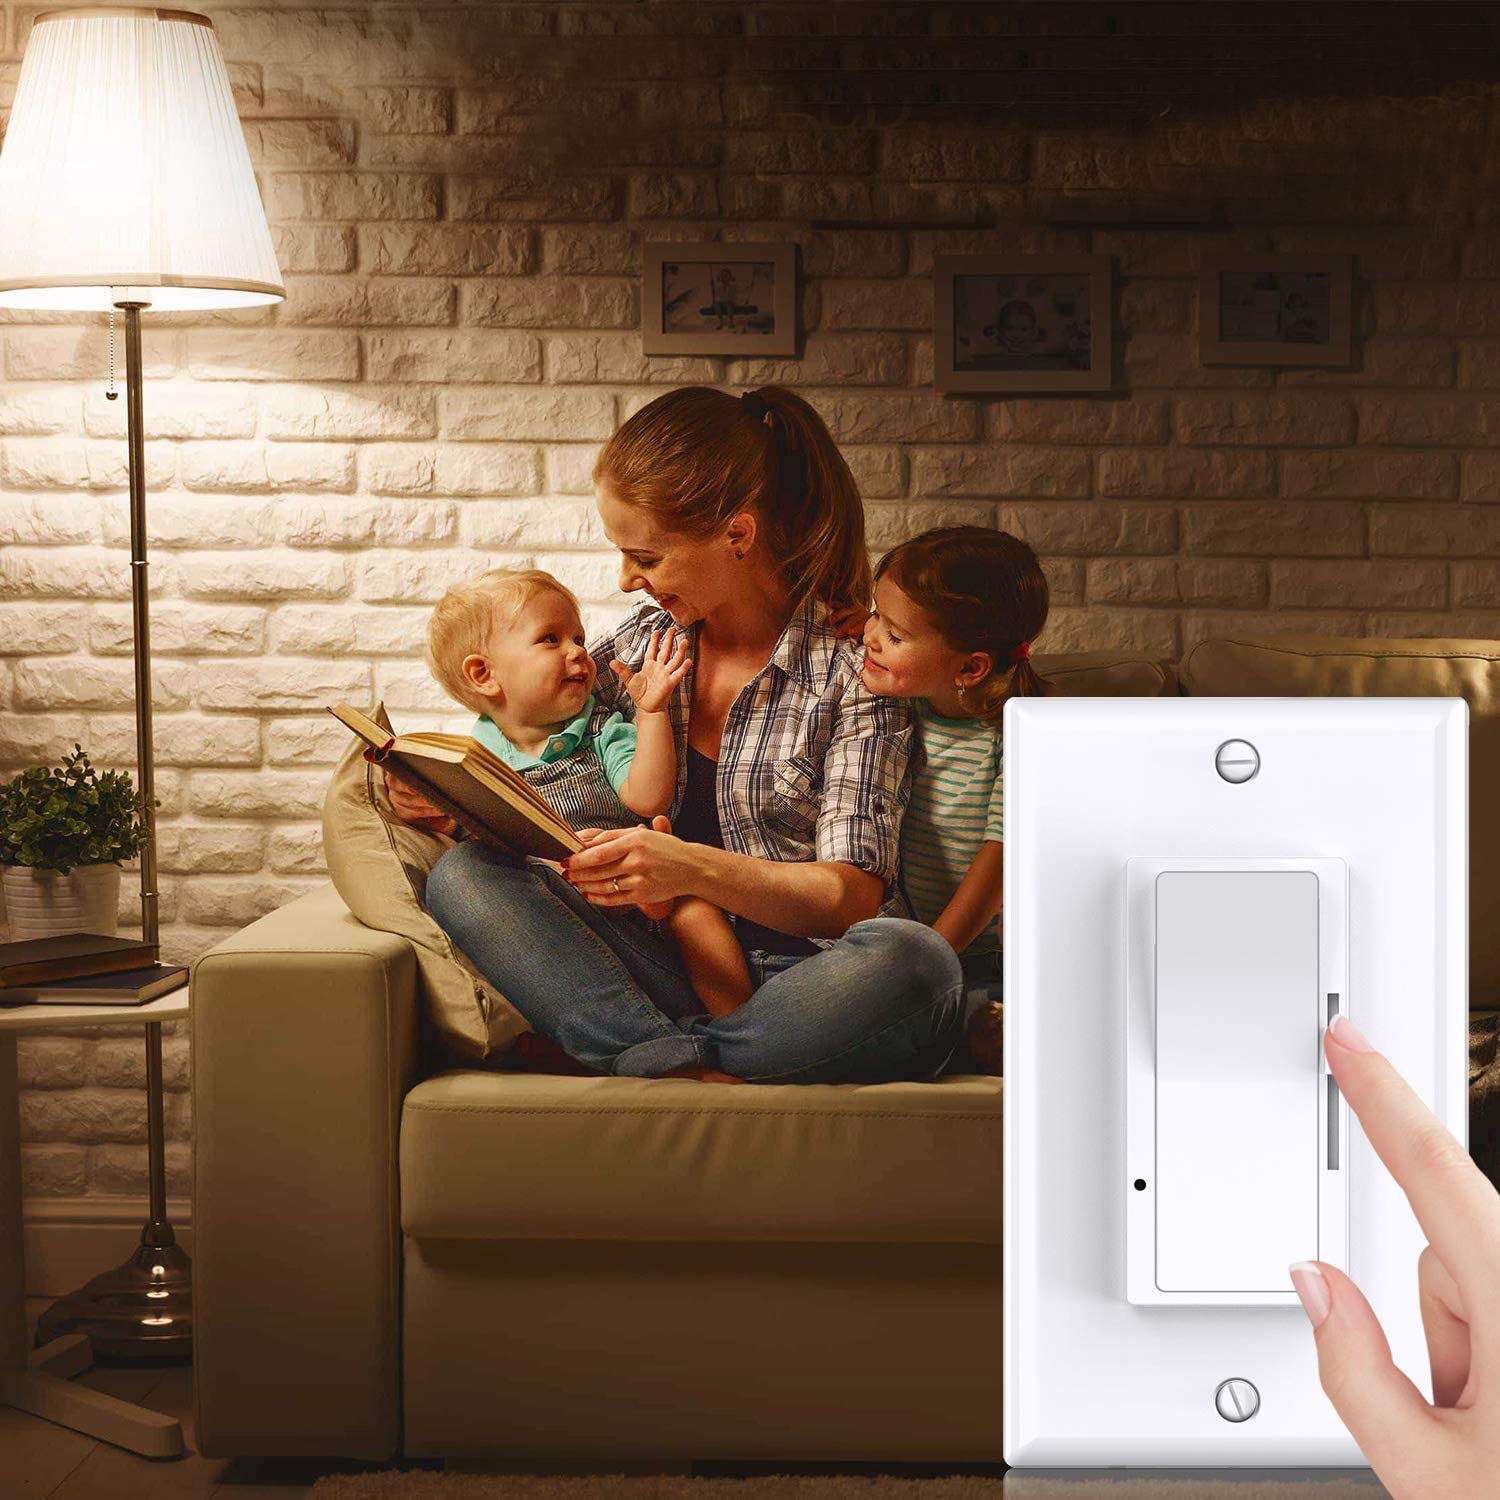 Keygma 3 Three Way 125V 220V AC 150W 300W 600W Triac LED Wall Dimmers Switches For Children's Room Led Lamp Lights Switch